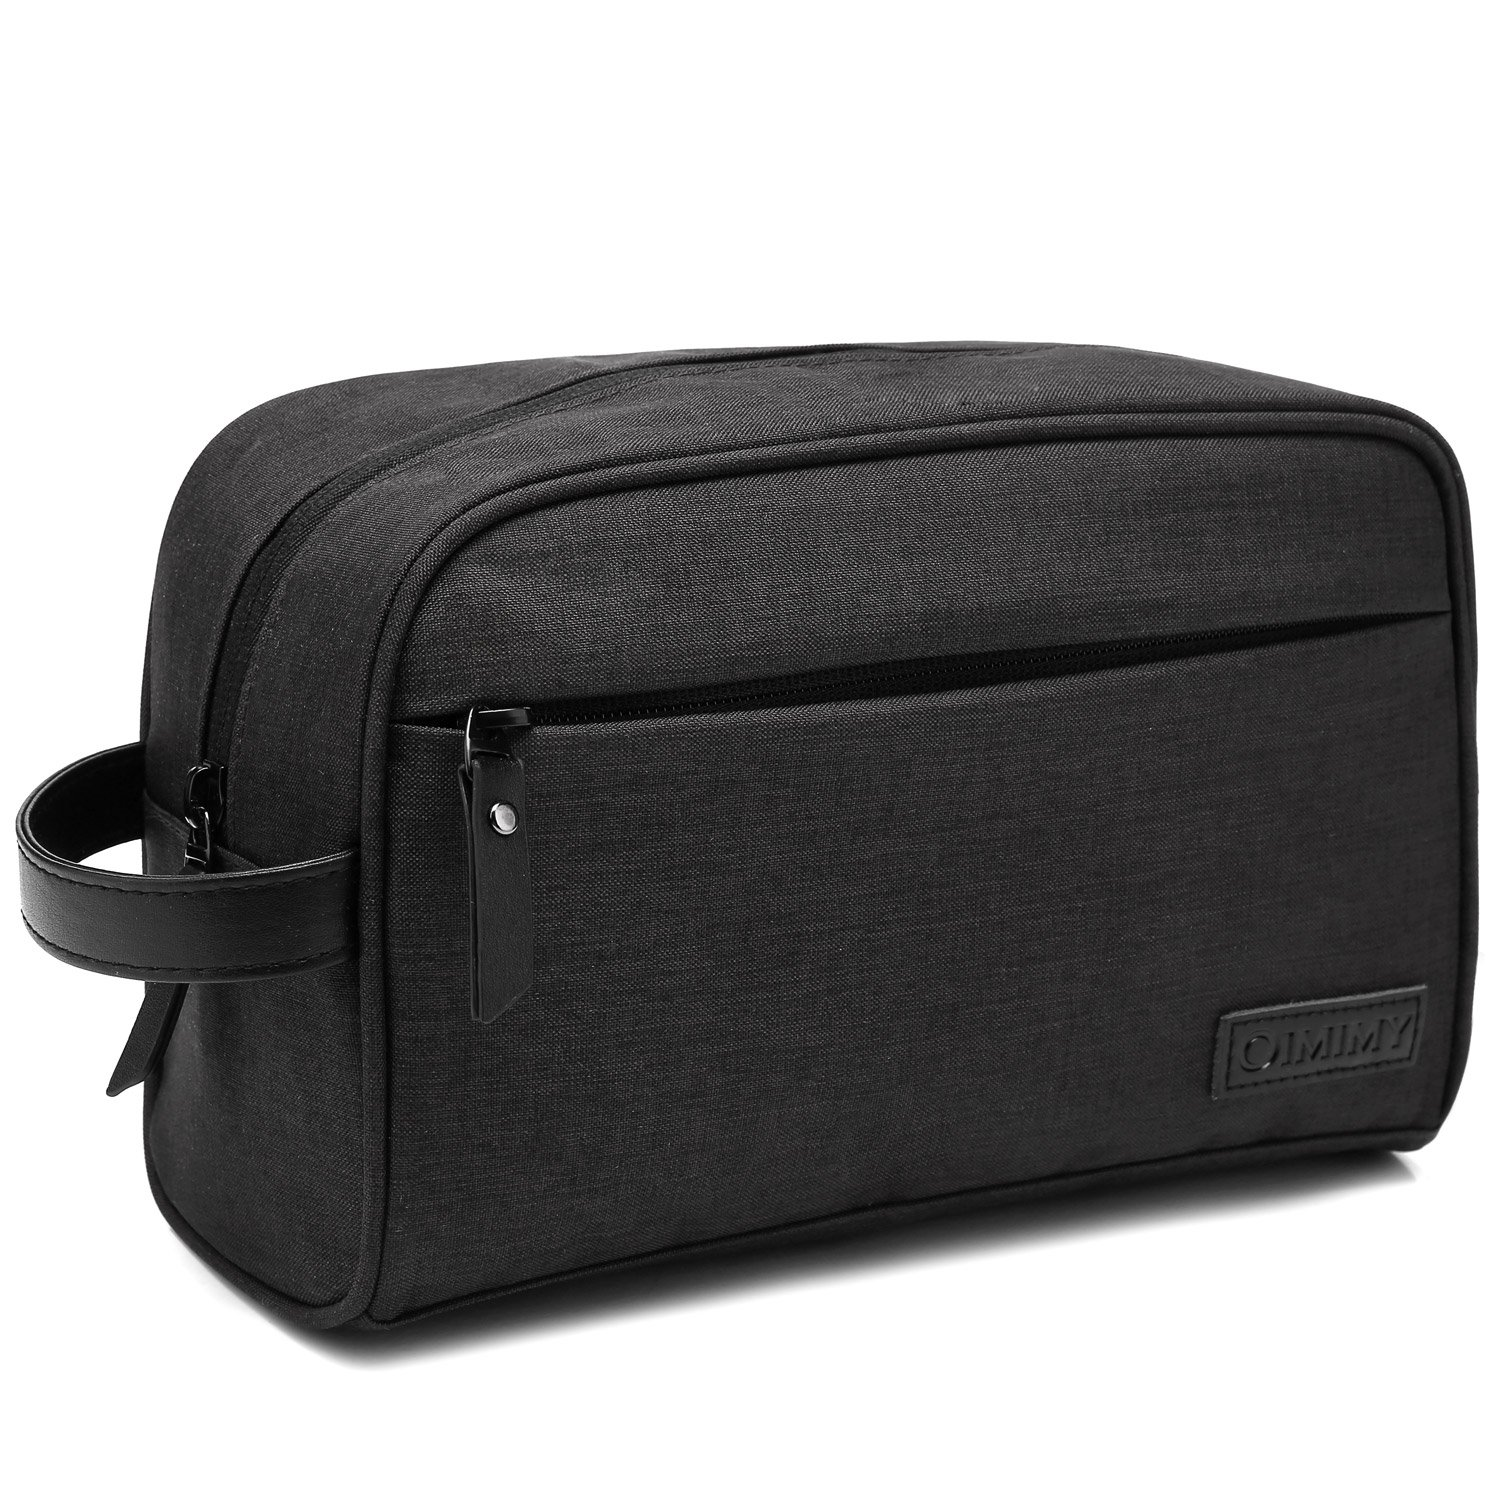 Dopp Kit Mens Toiletry Bag Travel Bathroom Bag Shaving Shower Cosmetic Organizer Black